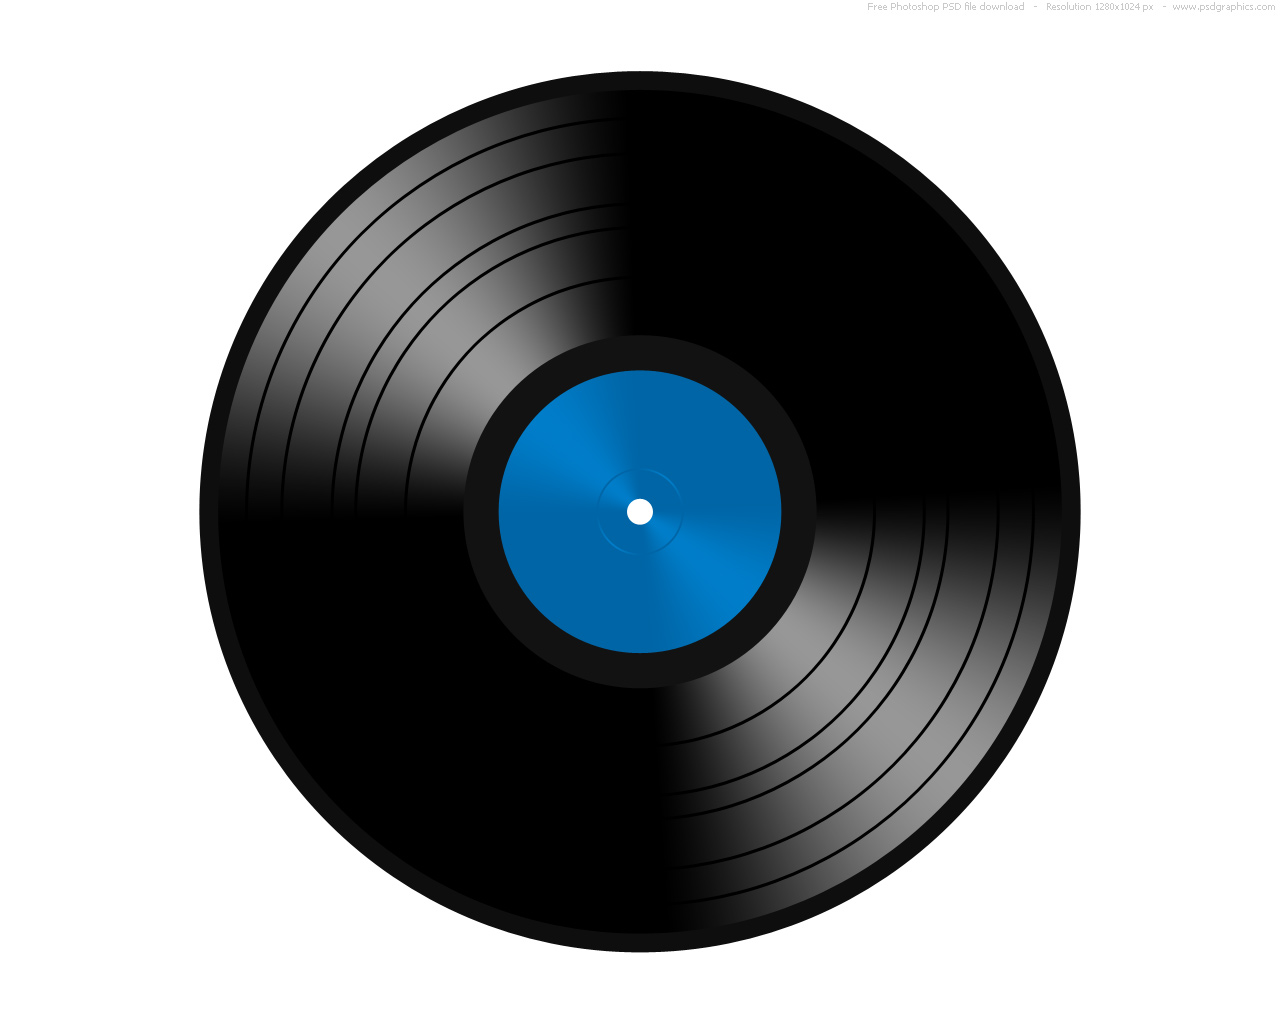 10 Vinyl Record PSD Images